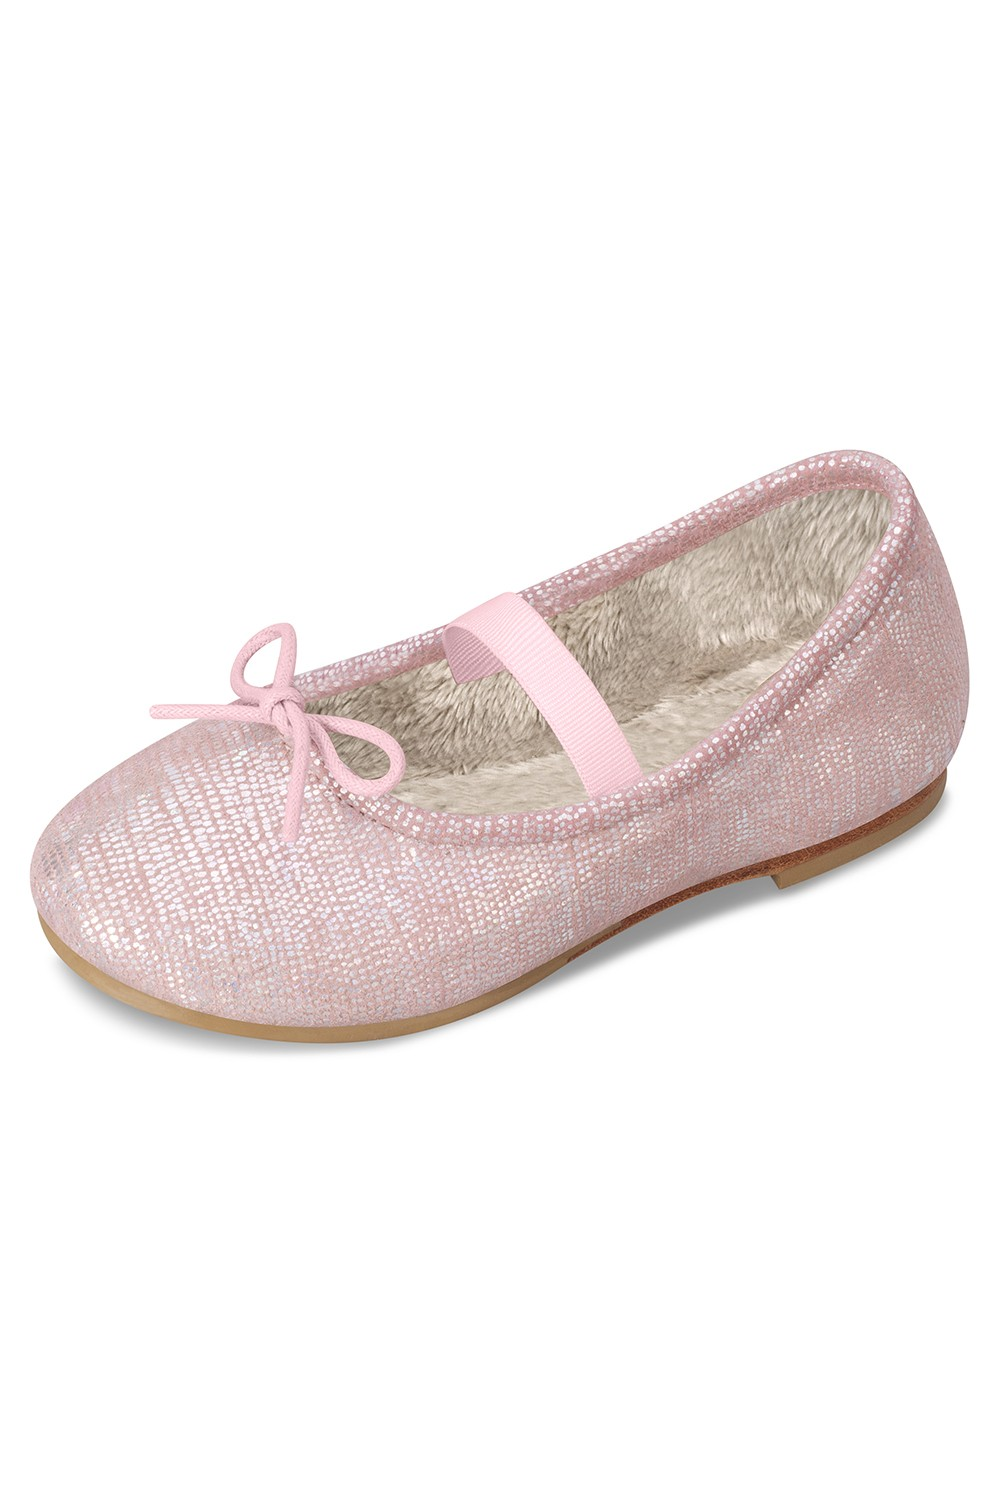 Ayano Toddler Ballet Shoe Toddlers Fashion Shoes